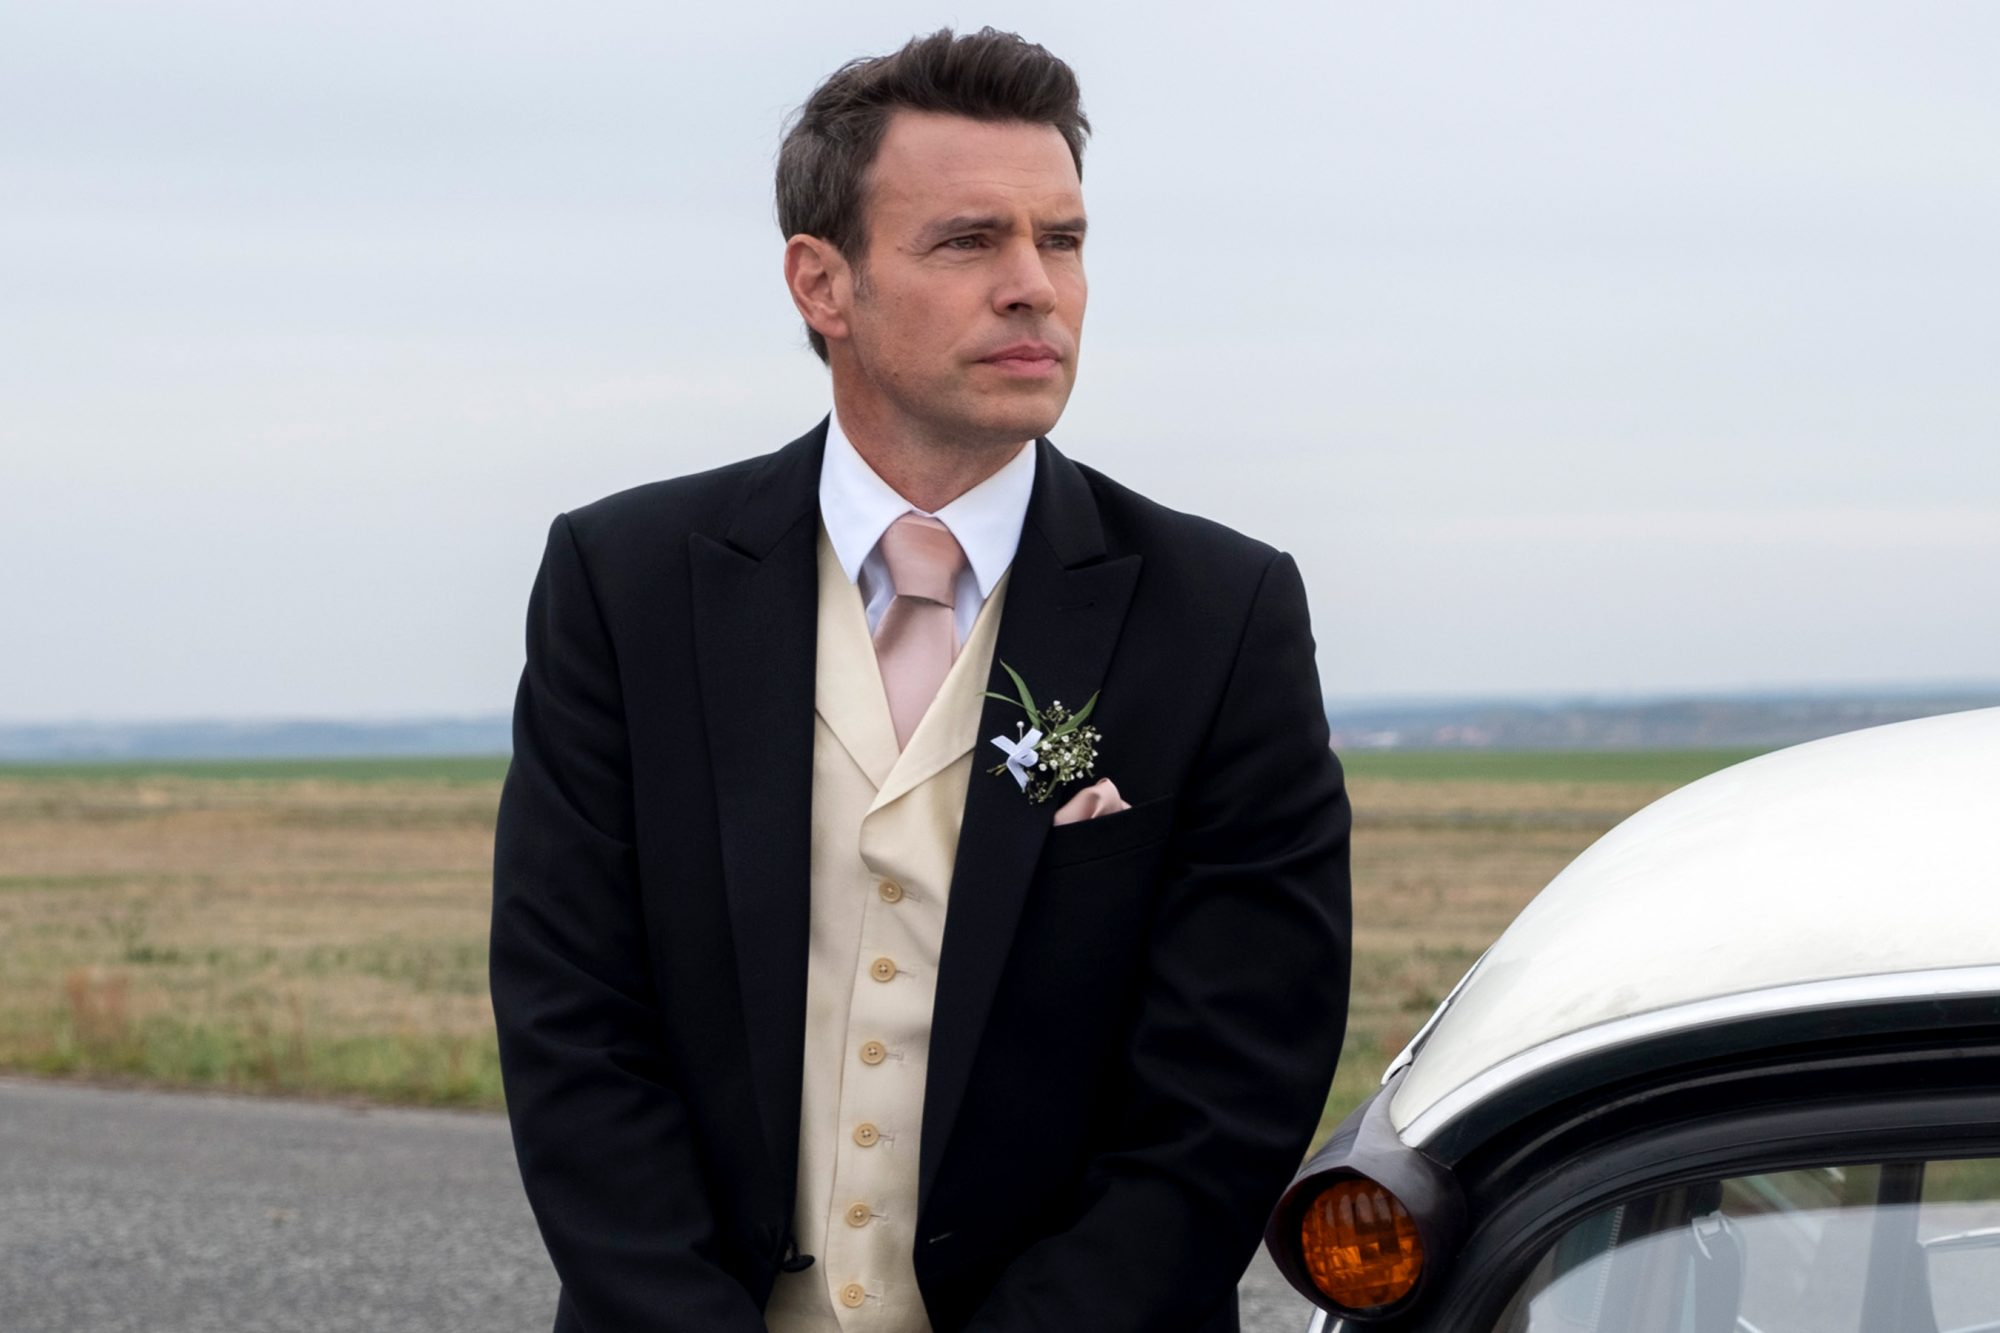 Scott Foley on Whiskey Cavalier